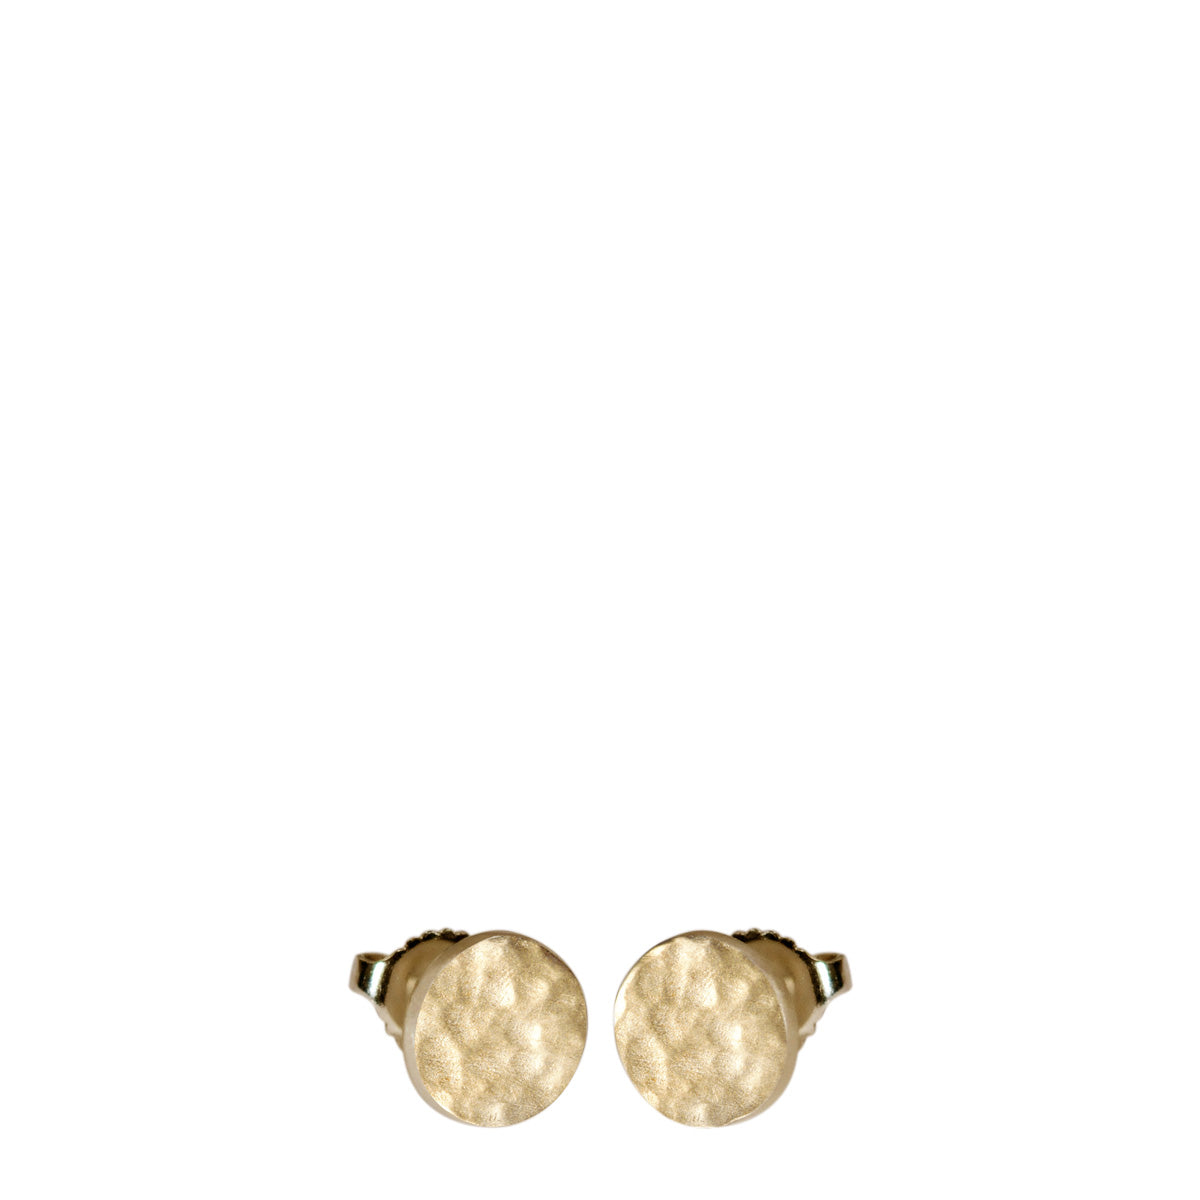 10K Gold Hammered Stud Earrings